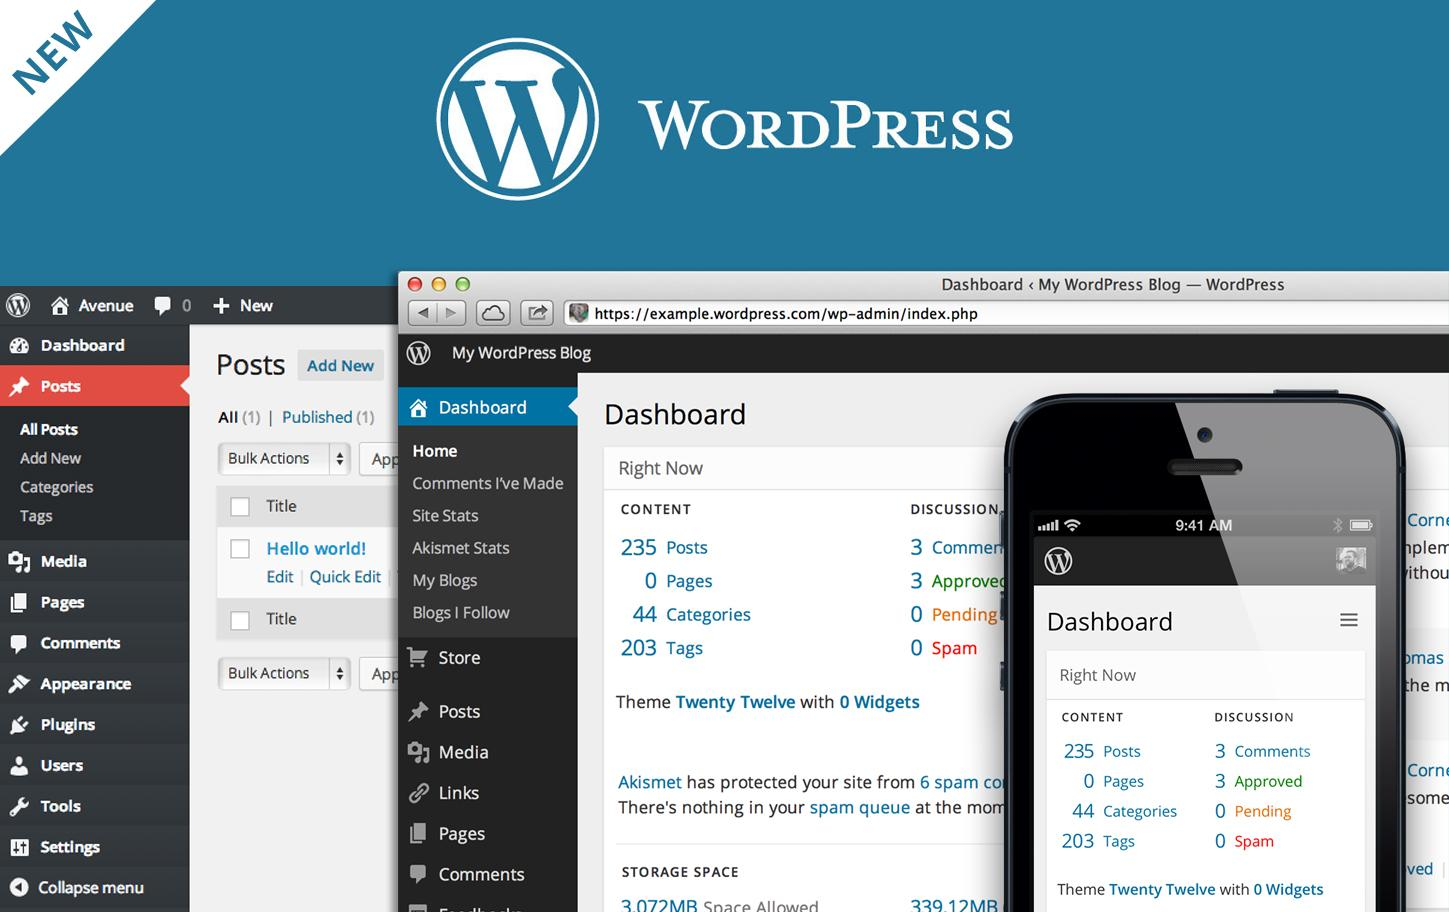 5 Tips to Starting Your New WordPress Site